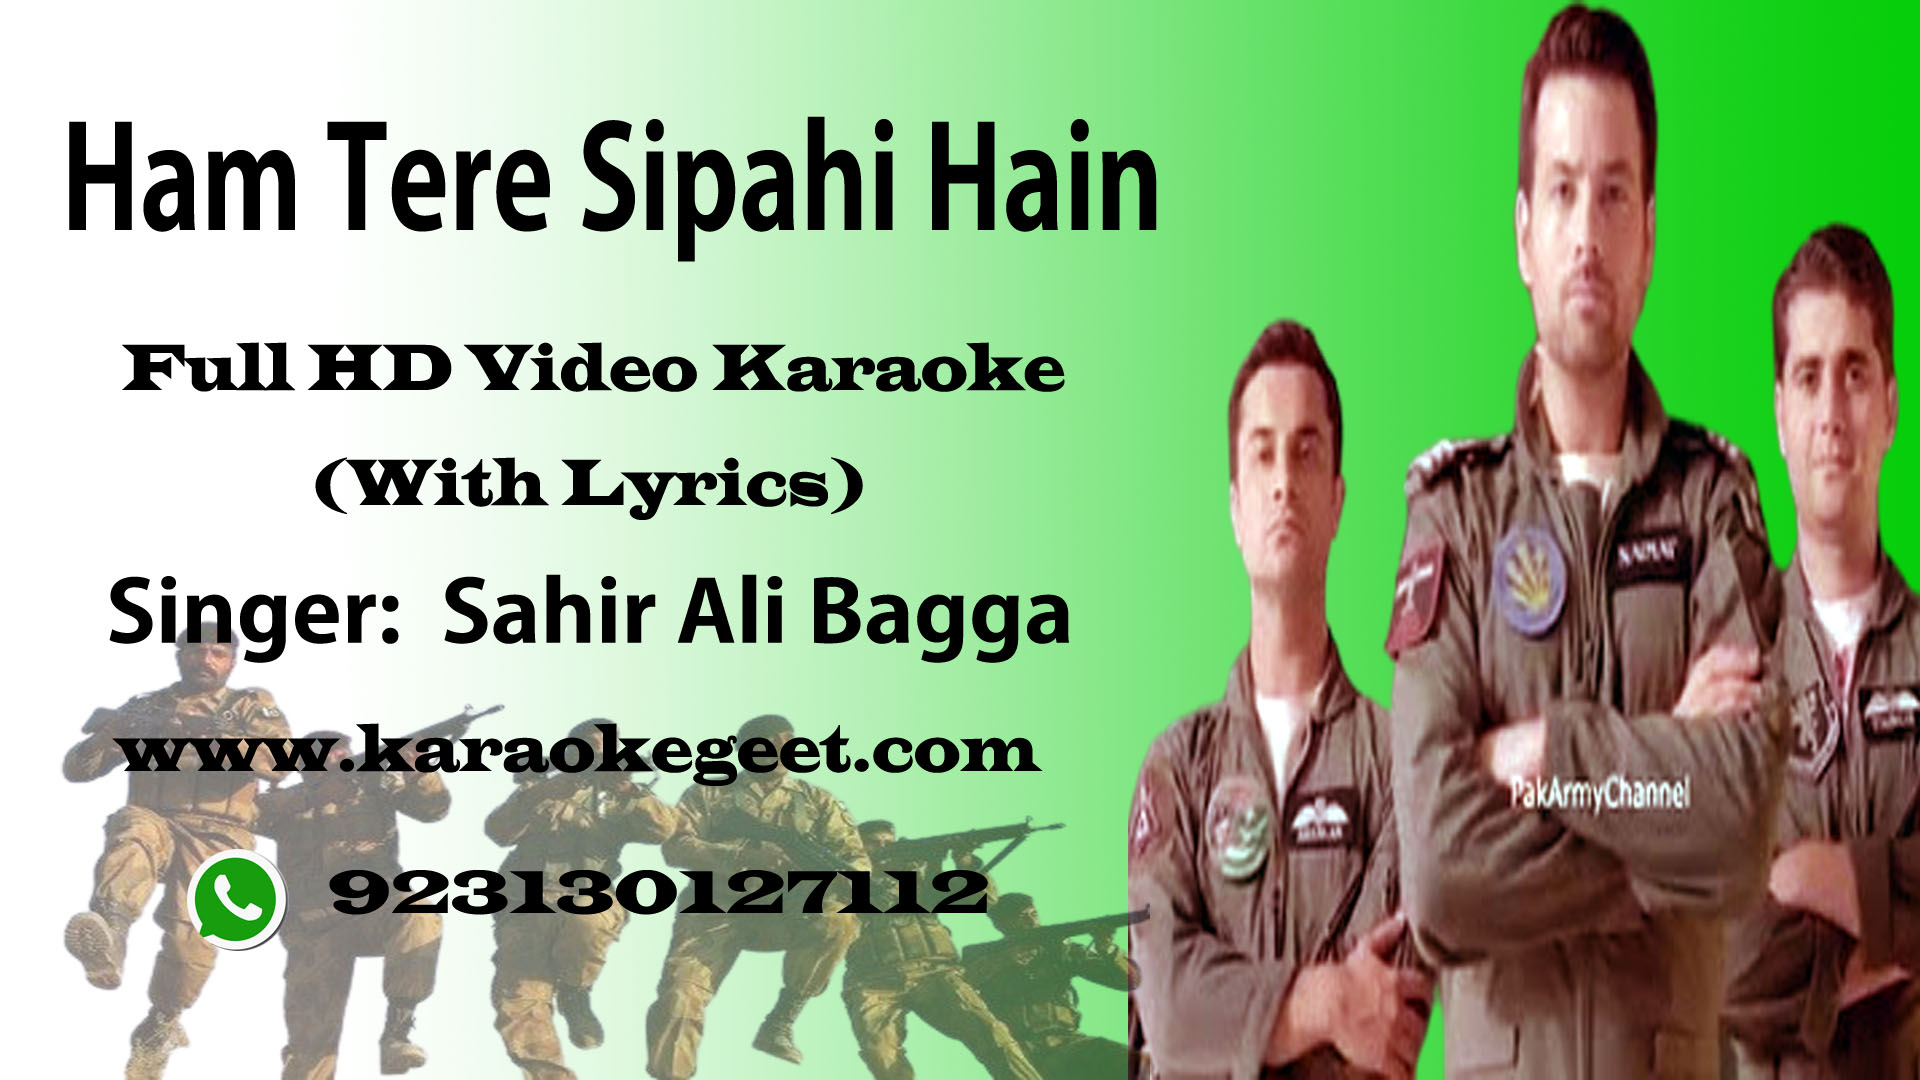 Ham tere sipahi hain Video Karaoke